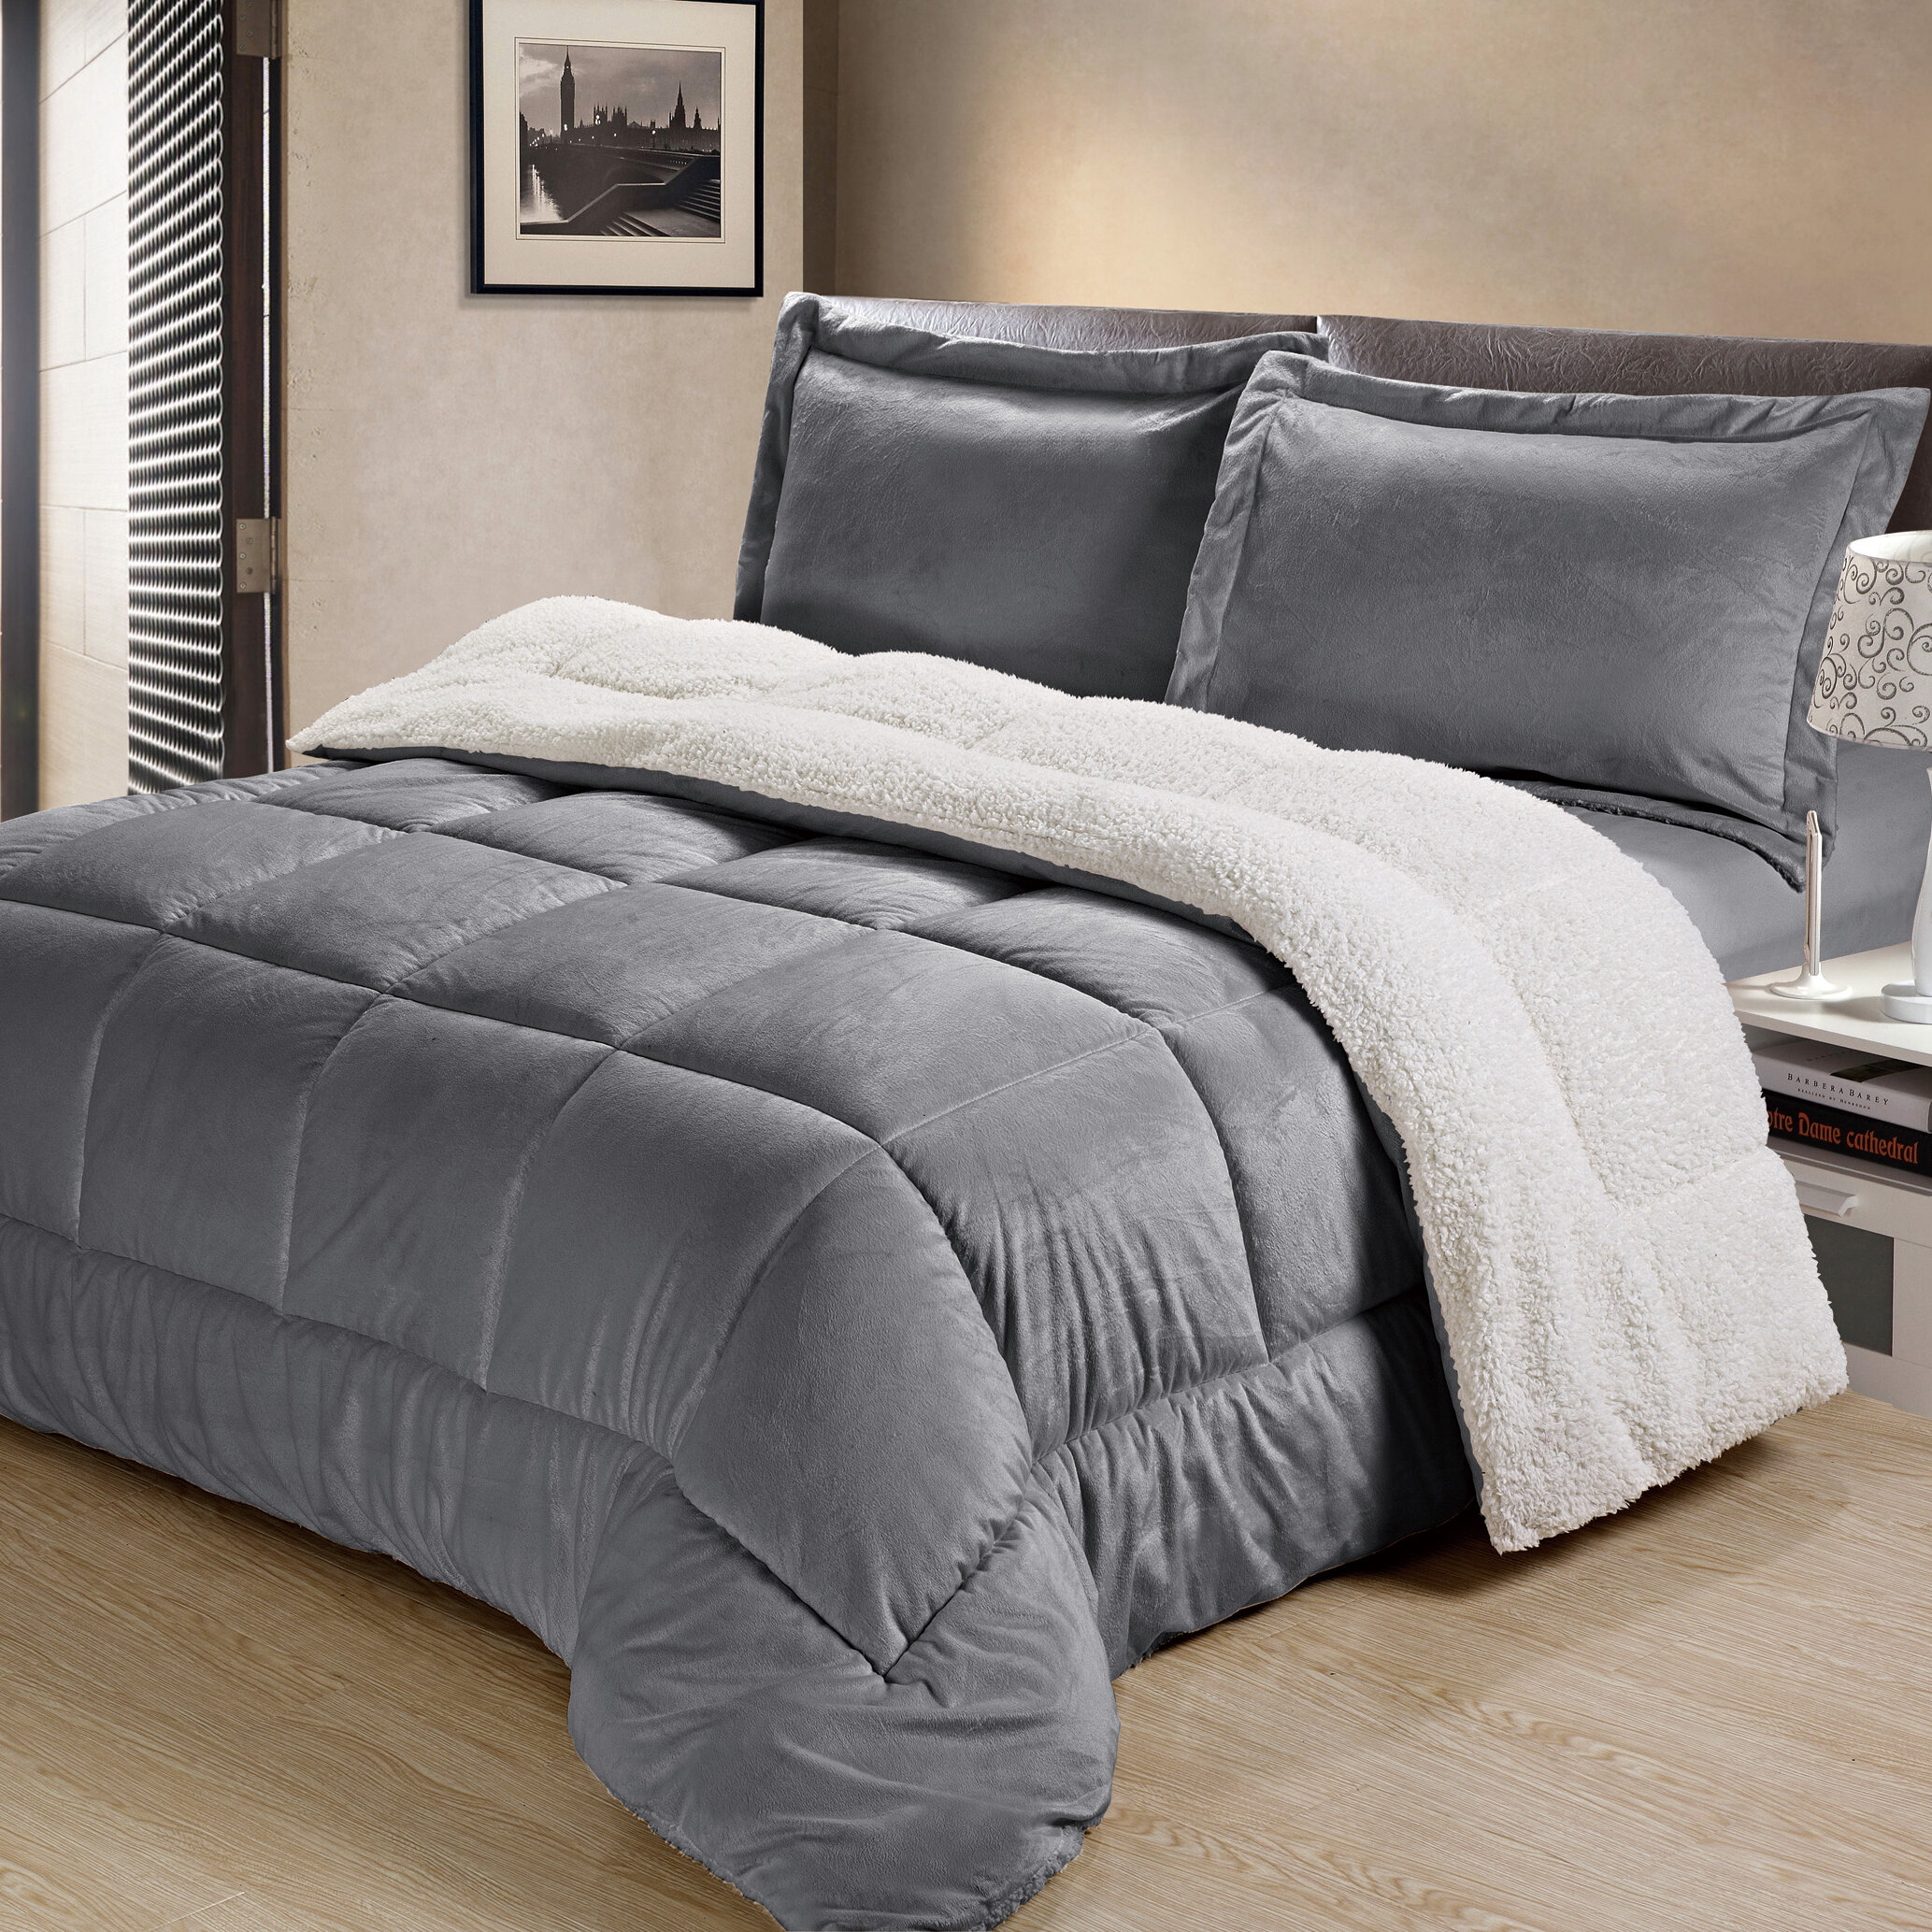 bath bed reviews alternative pdx down wayfair home reversible comforter alwyn